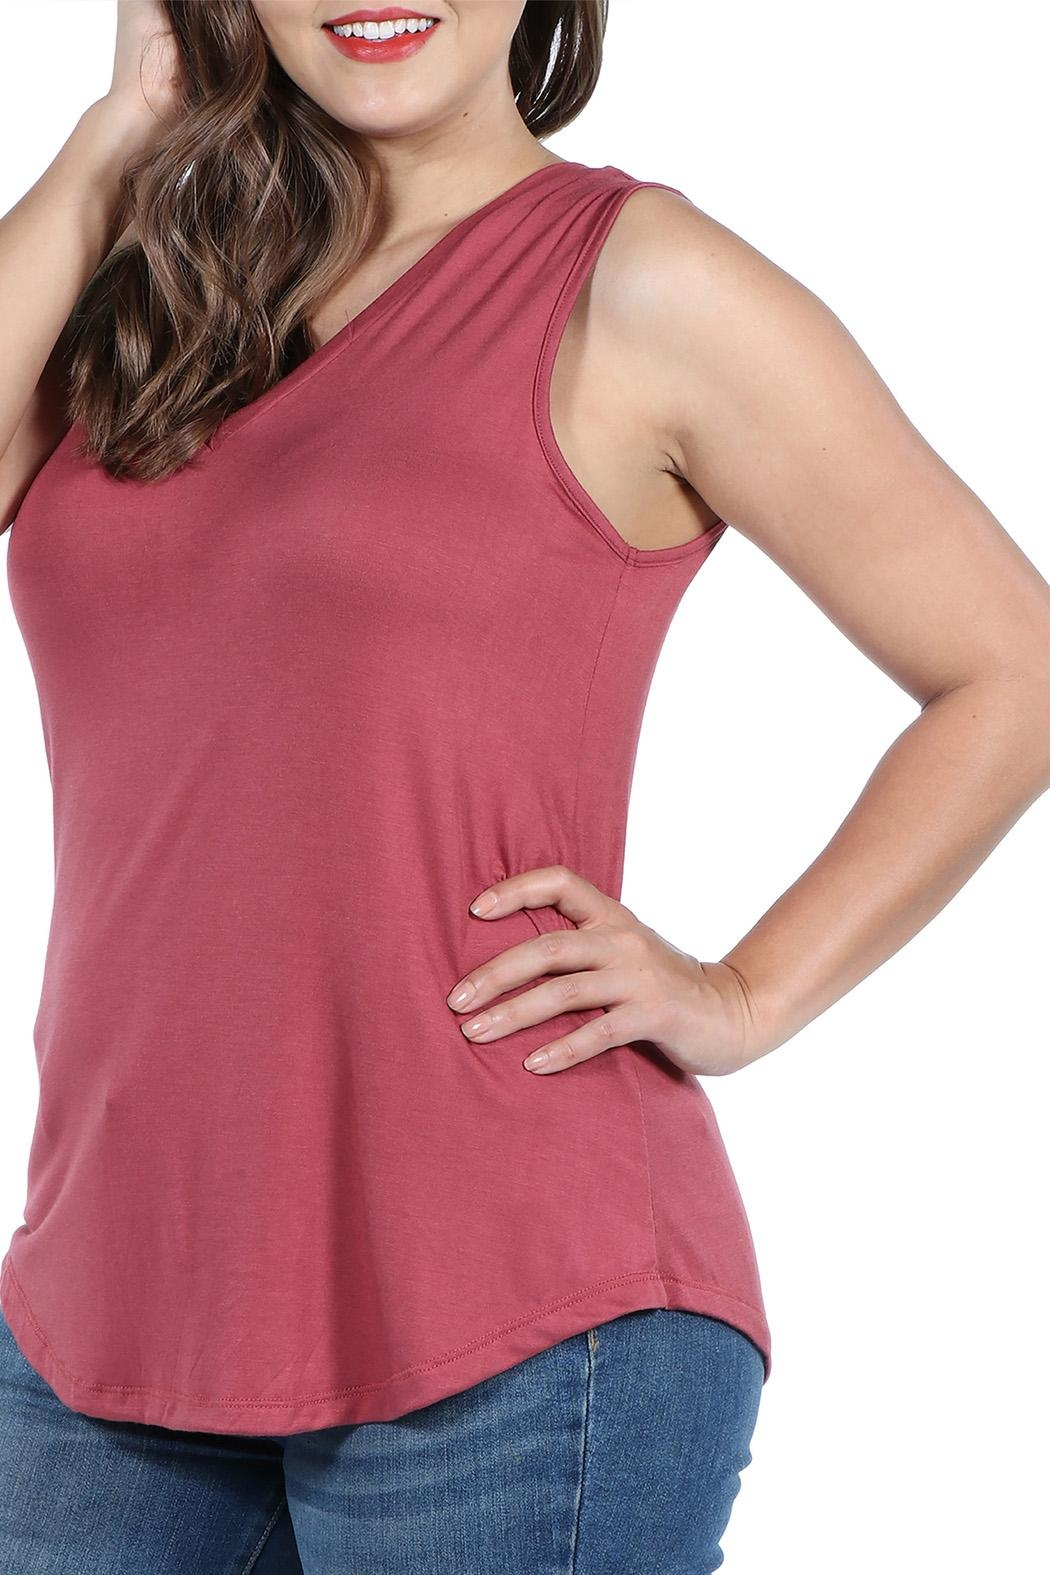 24/7 Comfort Apparel Plus Sleeveless Top - Front Full Image